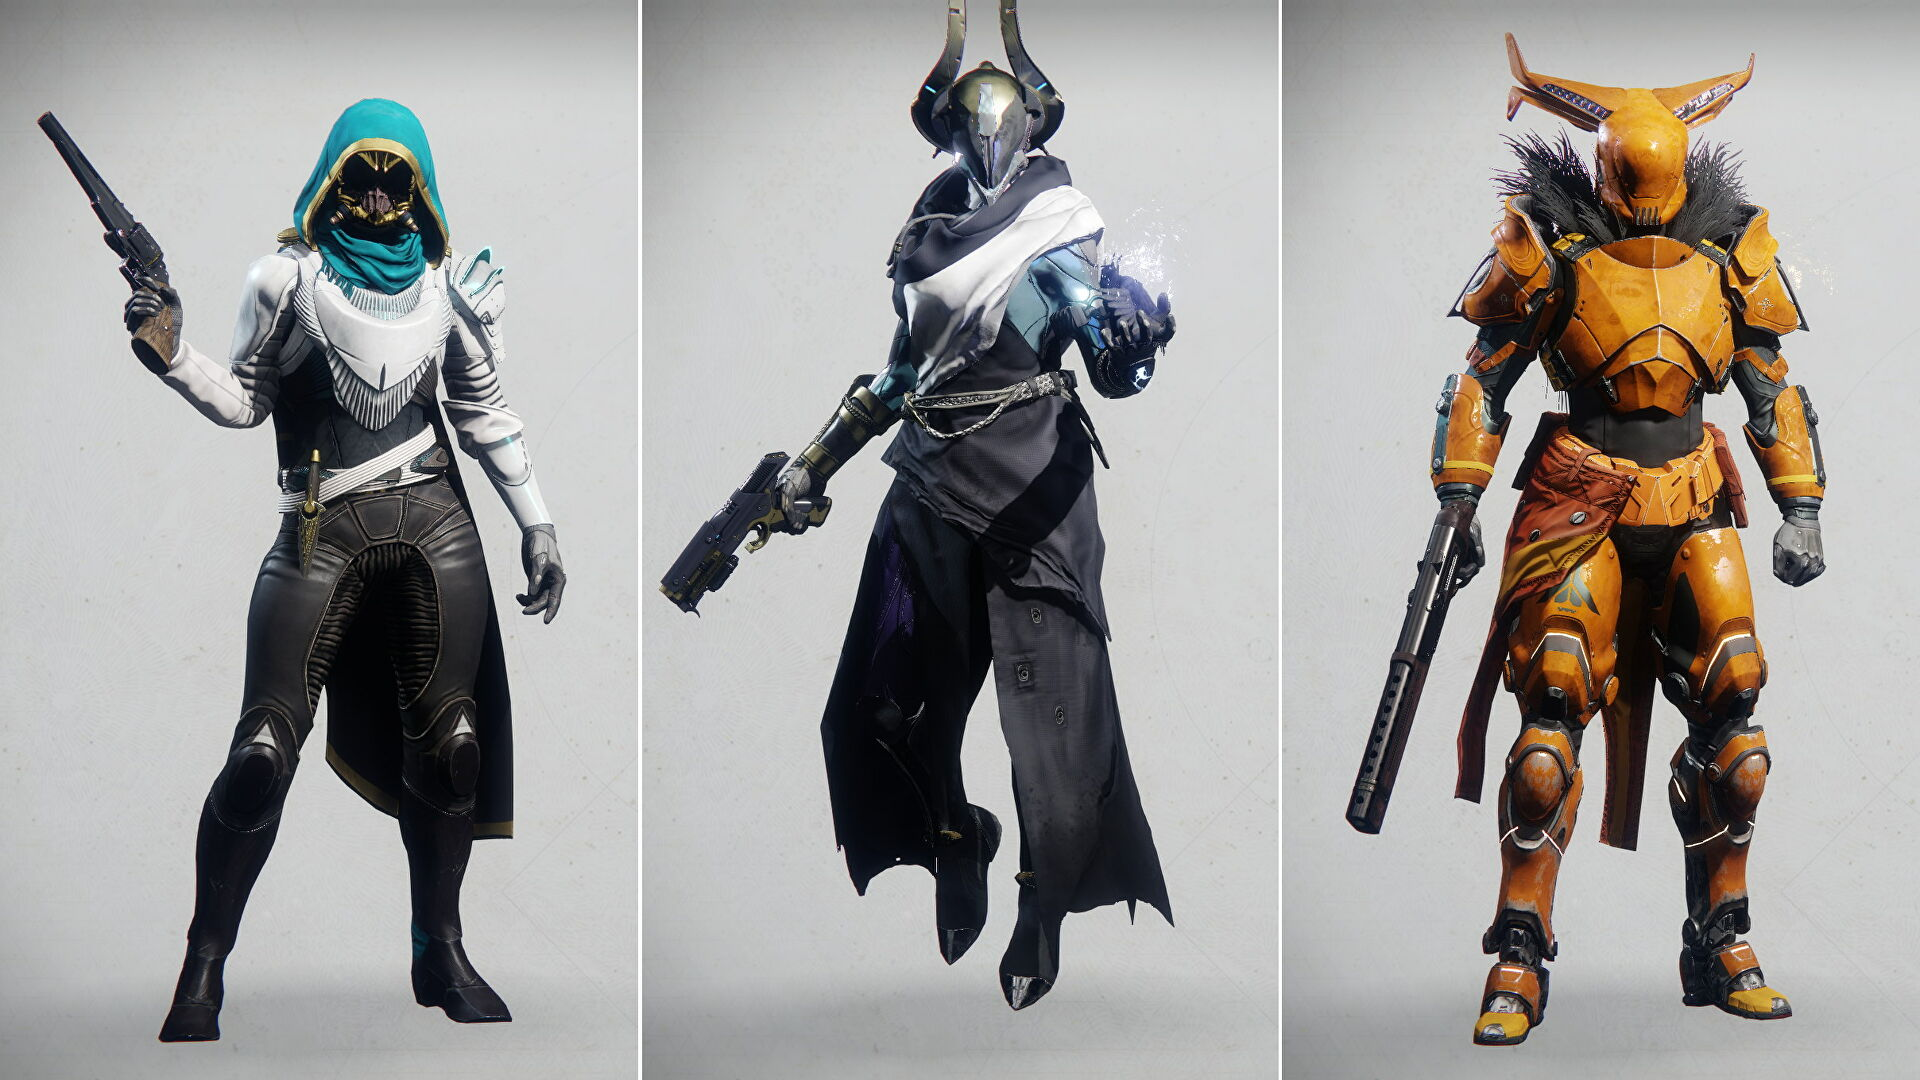 Please Destiny, explain how transmogrification will work or give me more vault space for fashion